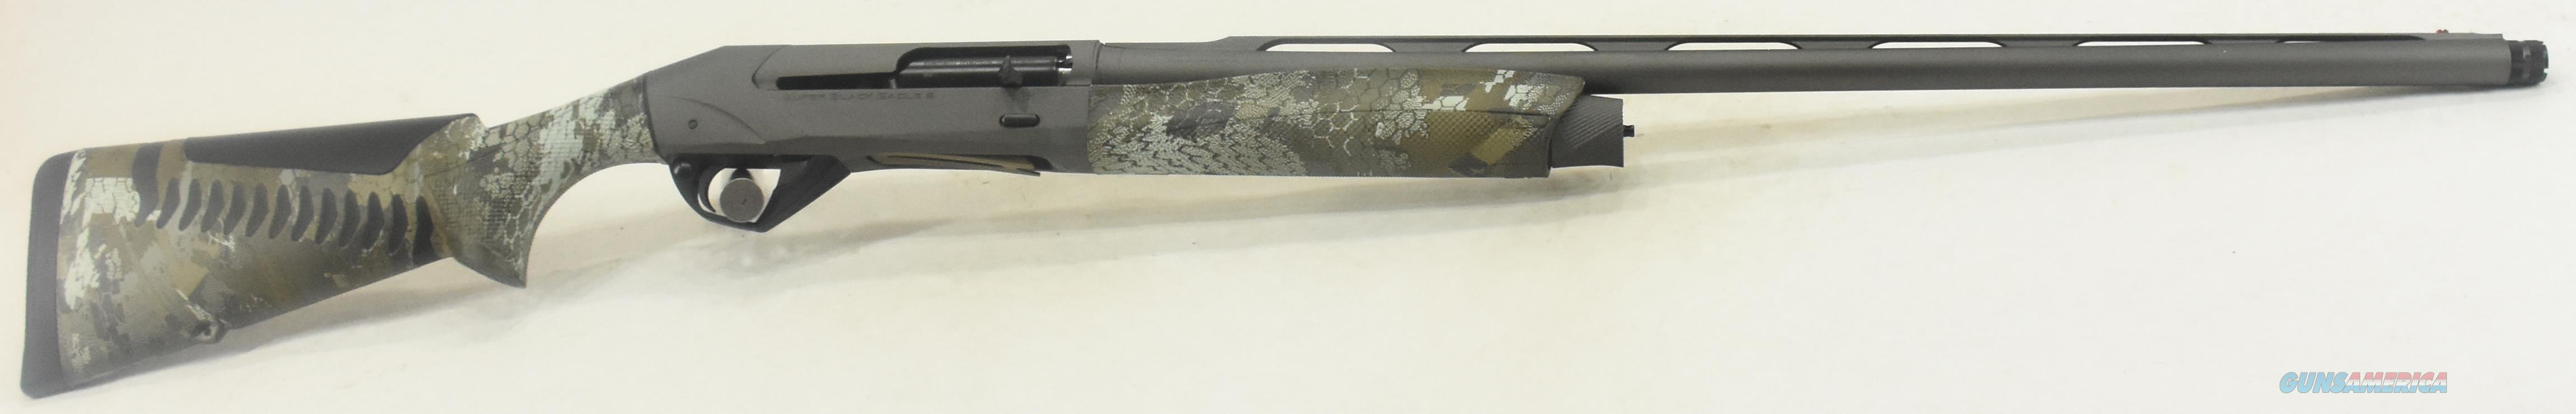 11230 Benelli Super Black Eagle 3 Tungsten Optifade Timber Camo 12 Ga 28In  Guns > Shotguns > Benelli Shotguns > Sporting